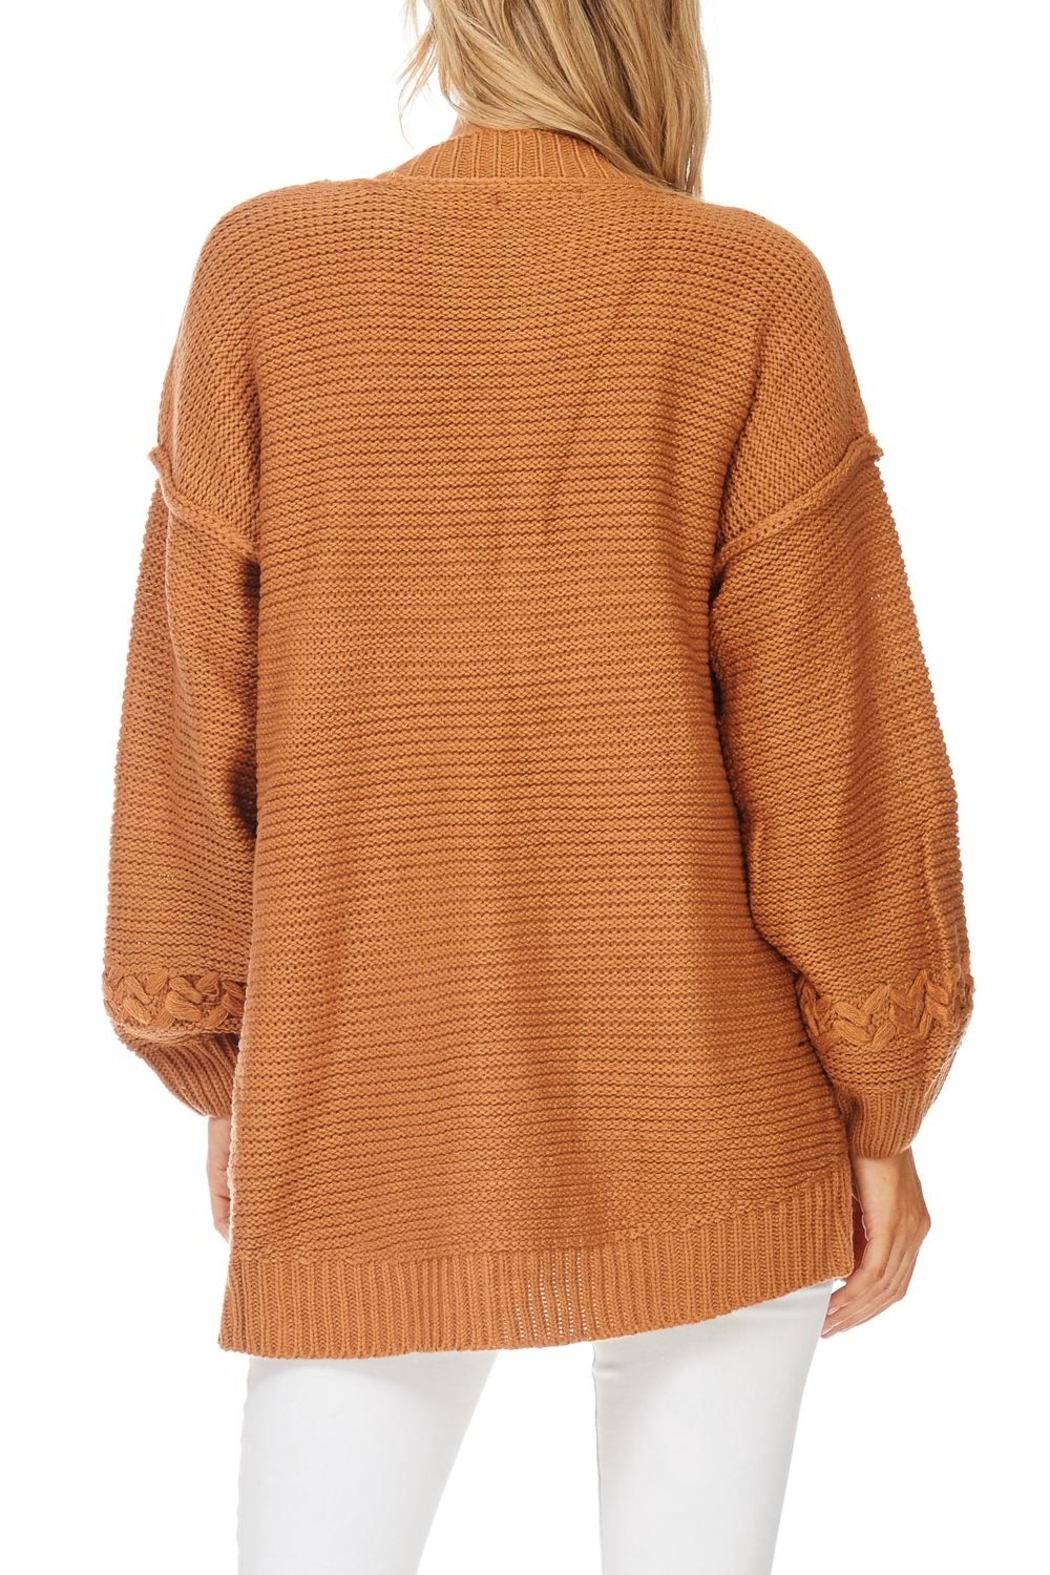 LoveRiche Rust Knit Sweater - Front Full Image